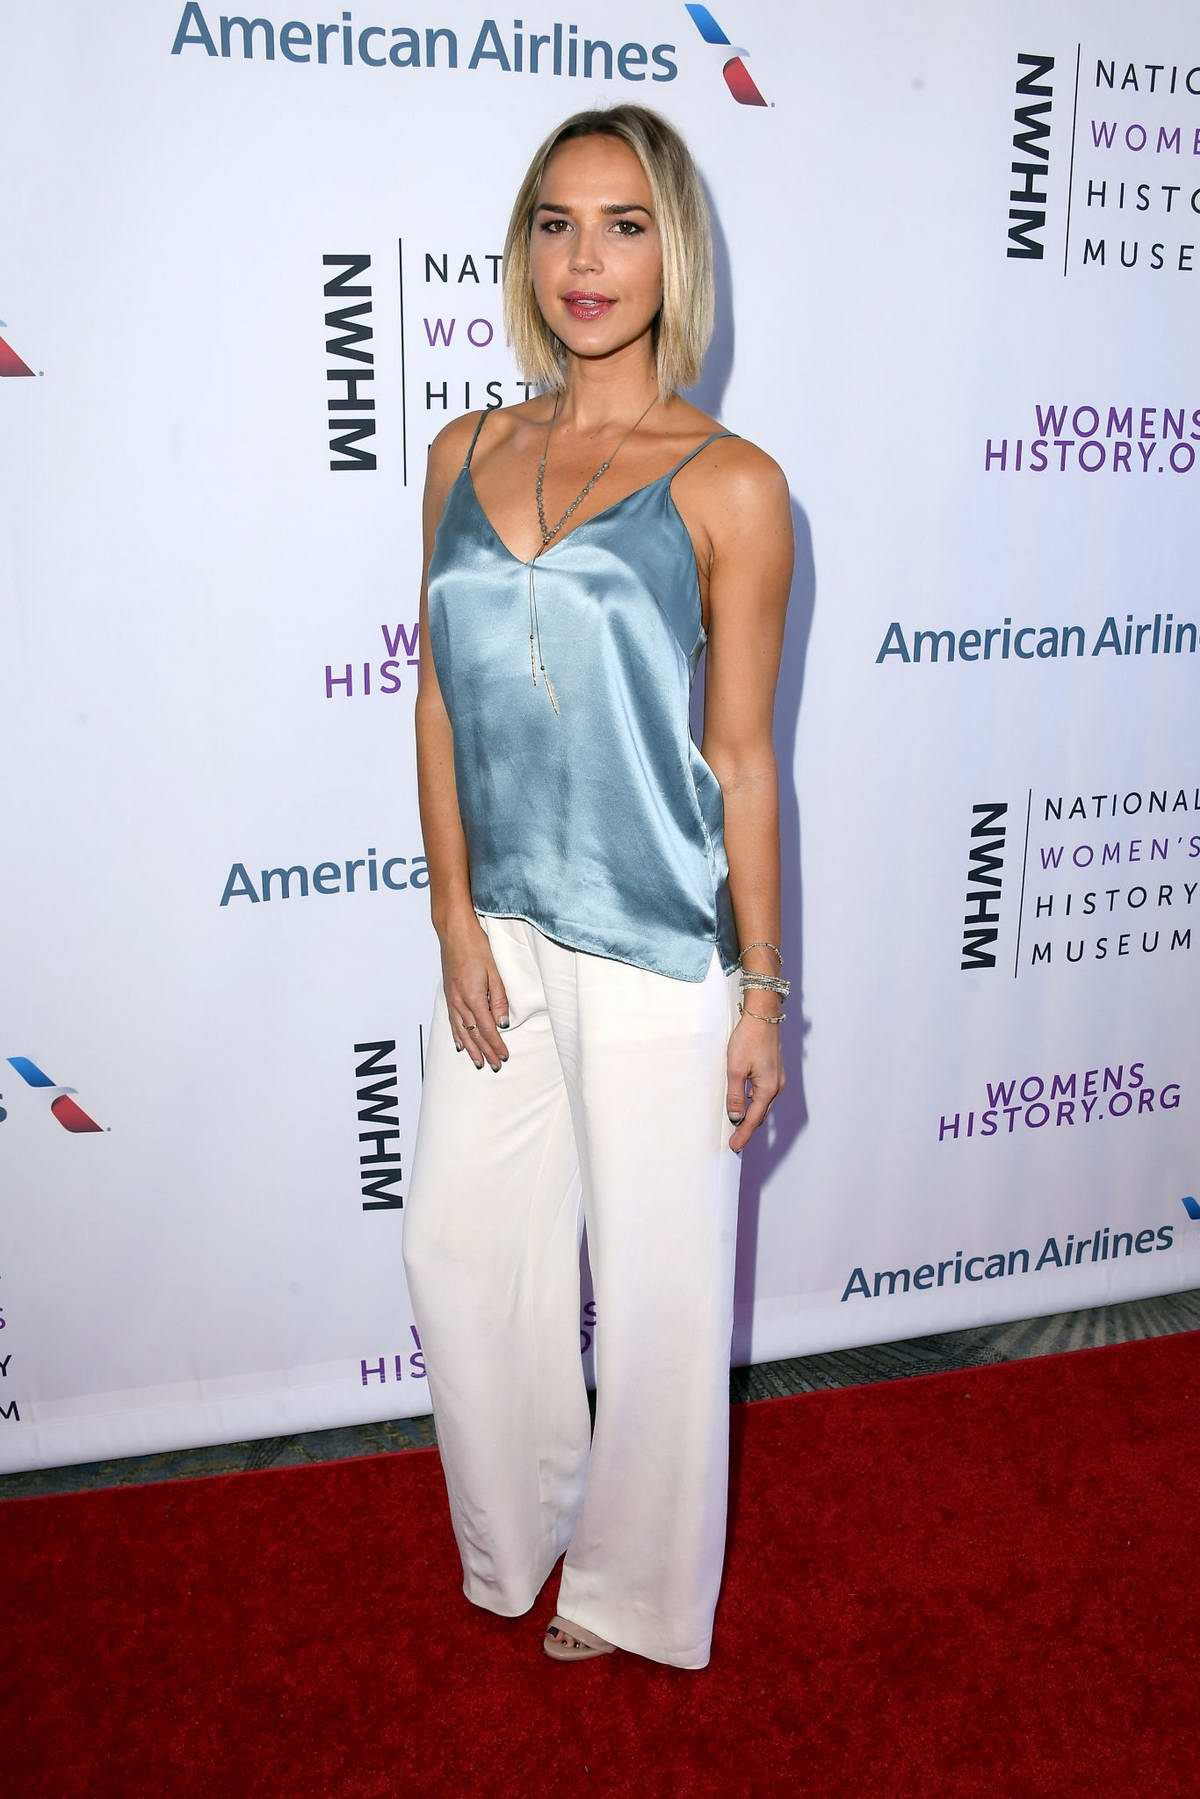 Arielle Kebbel attends 7th Annual Women Making History Awards in Beverly Hills, Los Angeles